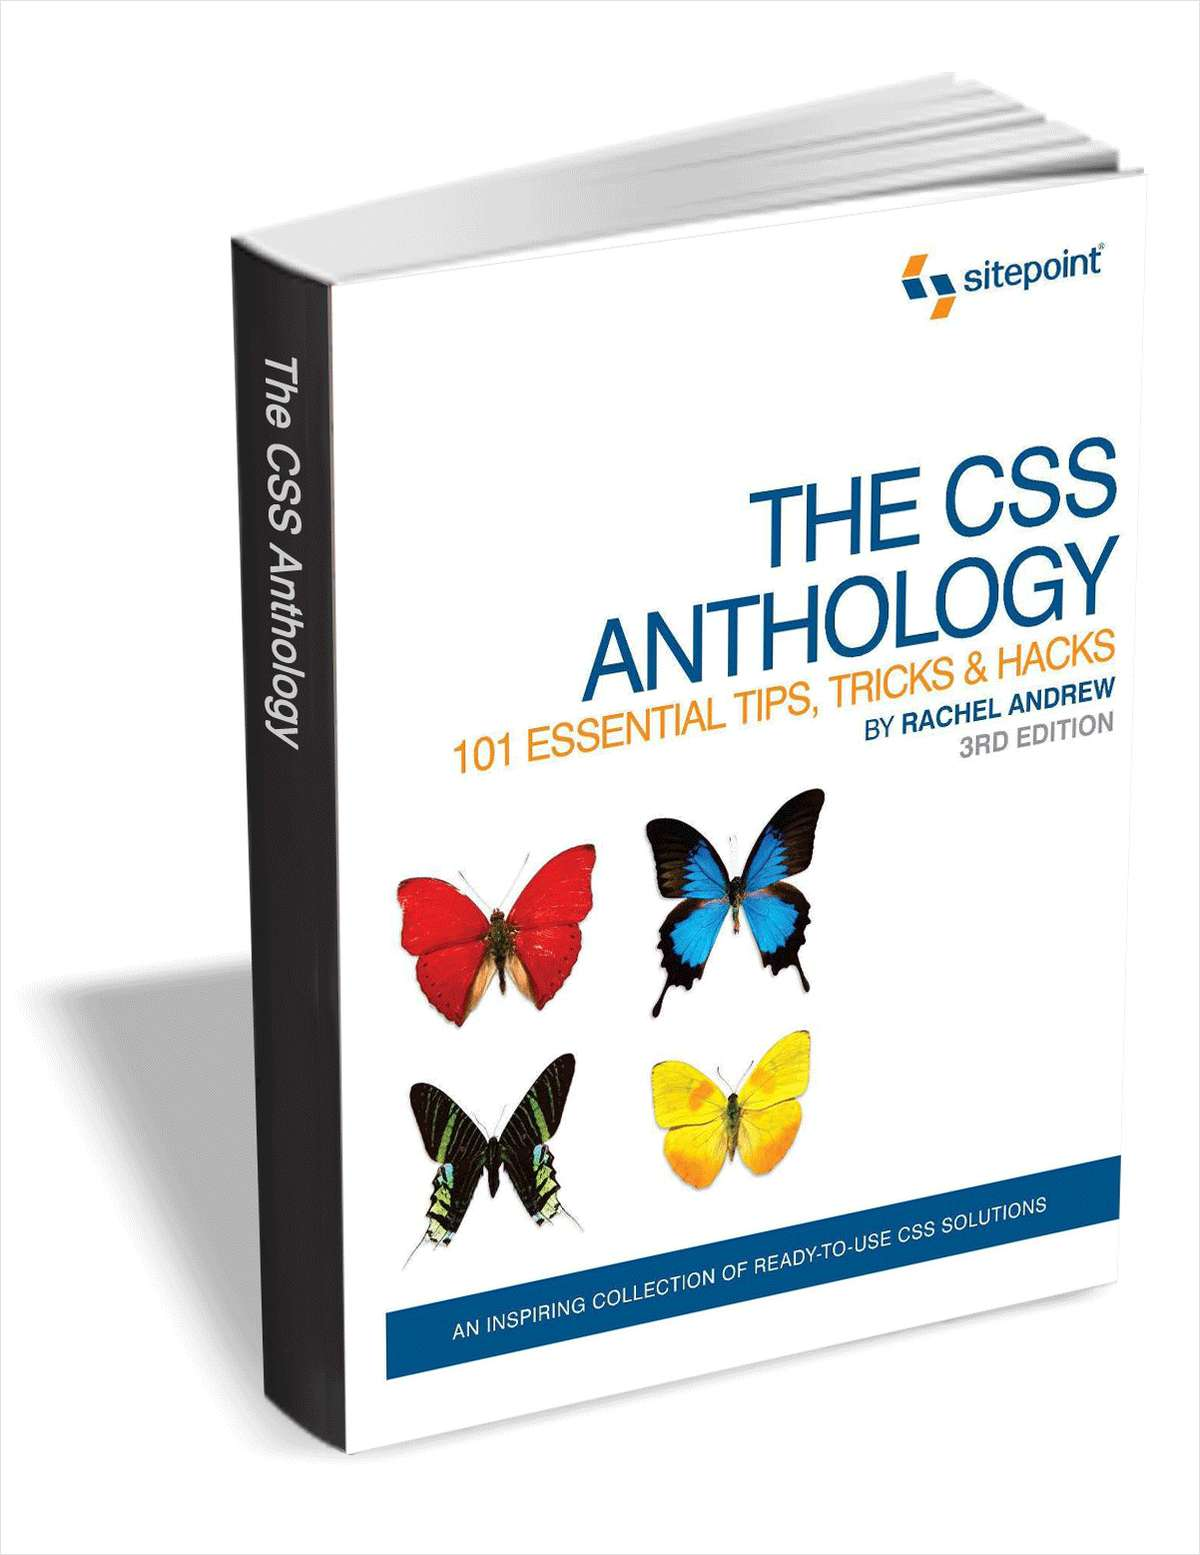 The CSS Anthology - 101 Essential Tips, Tricks & Hacks ($29 Value FREE For a Limited Time)